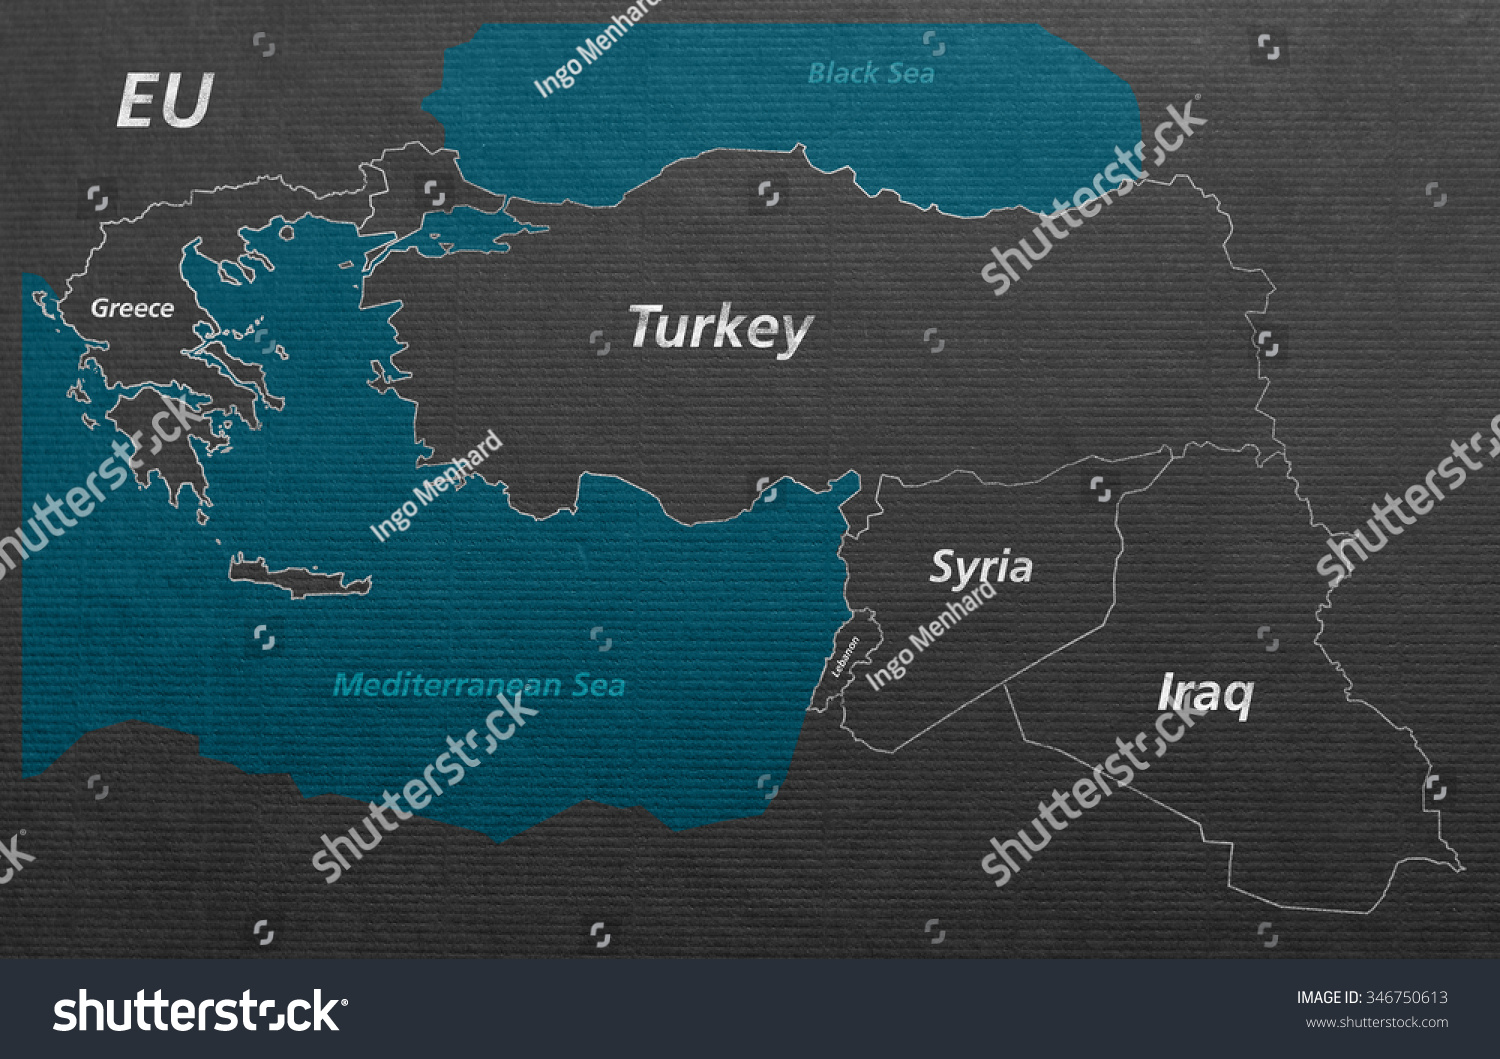 Overview crisis map turkey syria iraq stock illustration 346750613 overview crisis map turkey syria iraq lebanon greece eu gumiabroncs Gallery